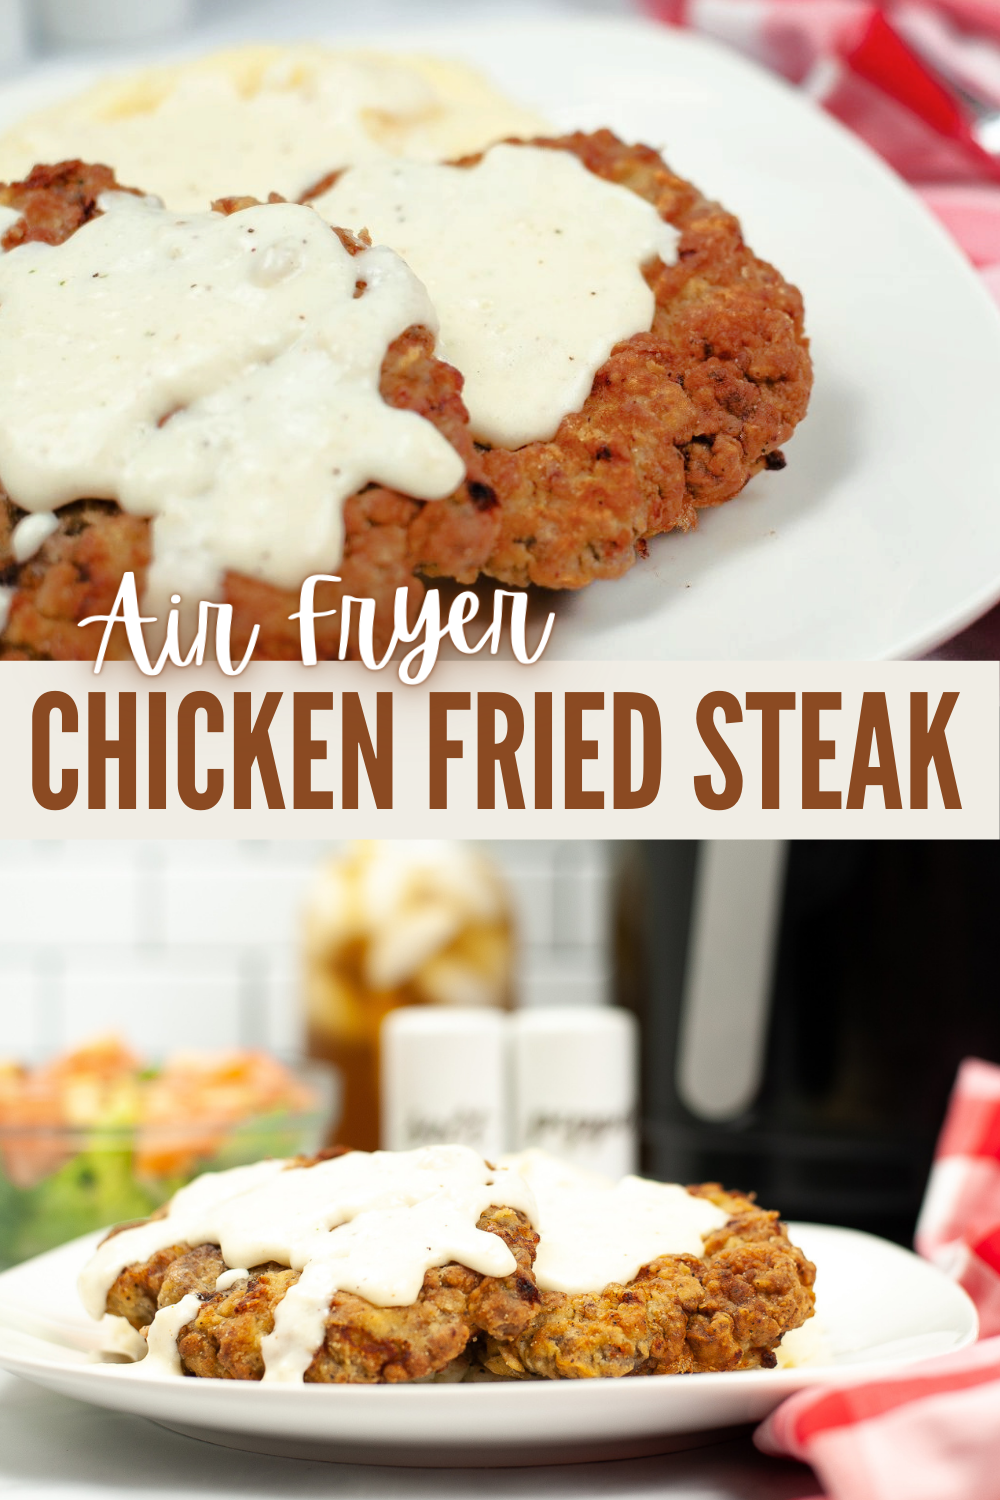 This Air Fryer Chicken Fried Steak with Gravy recipe lets you enjoy all the comfort of the traditional version, with none of the remorse! #chickenfriedsteak #airfryer #chicken #recipe via @wondermomwannab